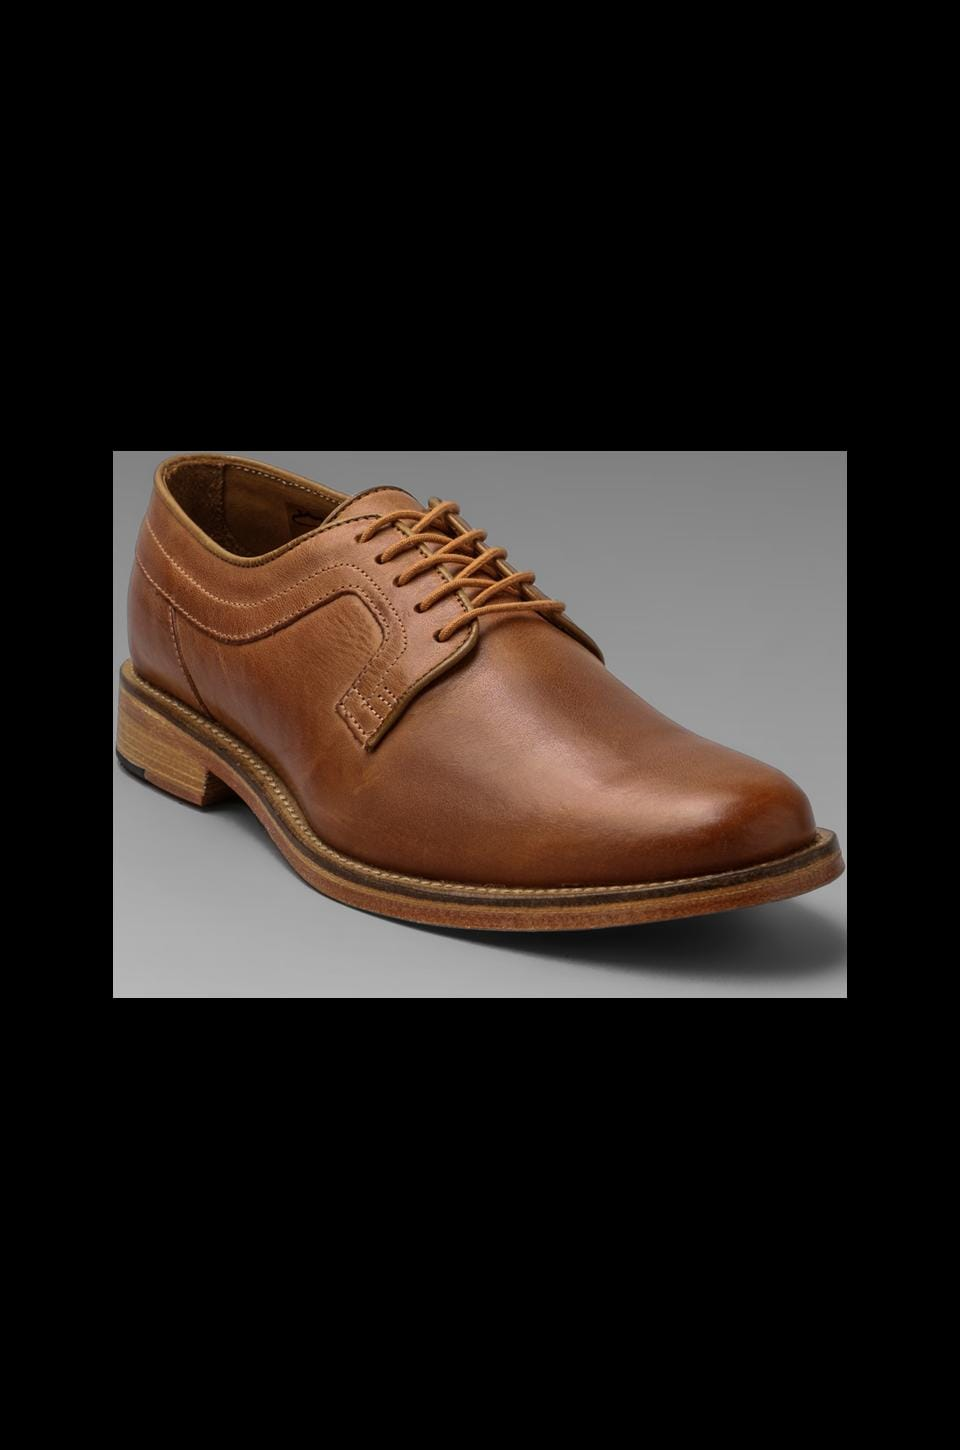 J SHOES Viceroy Shoes in Dark Tan